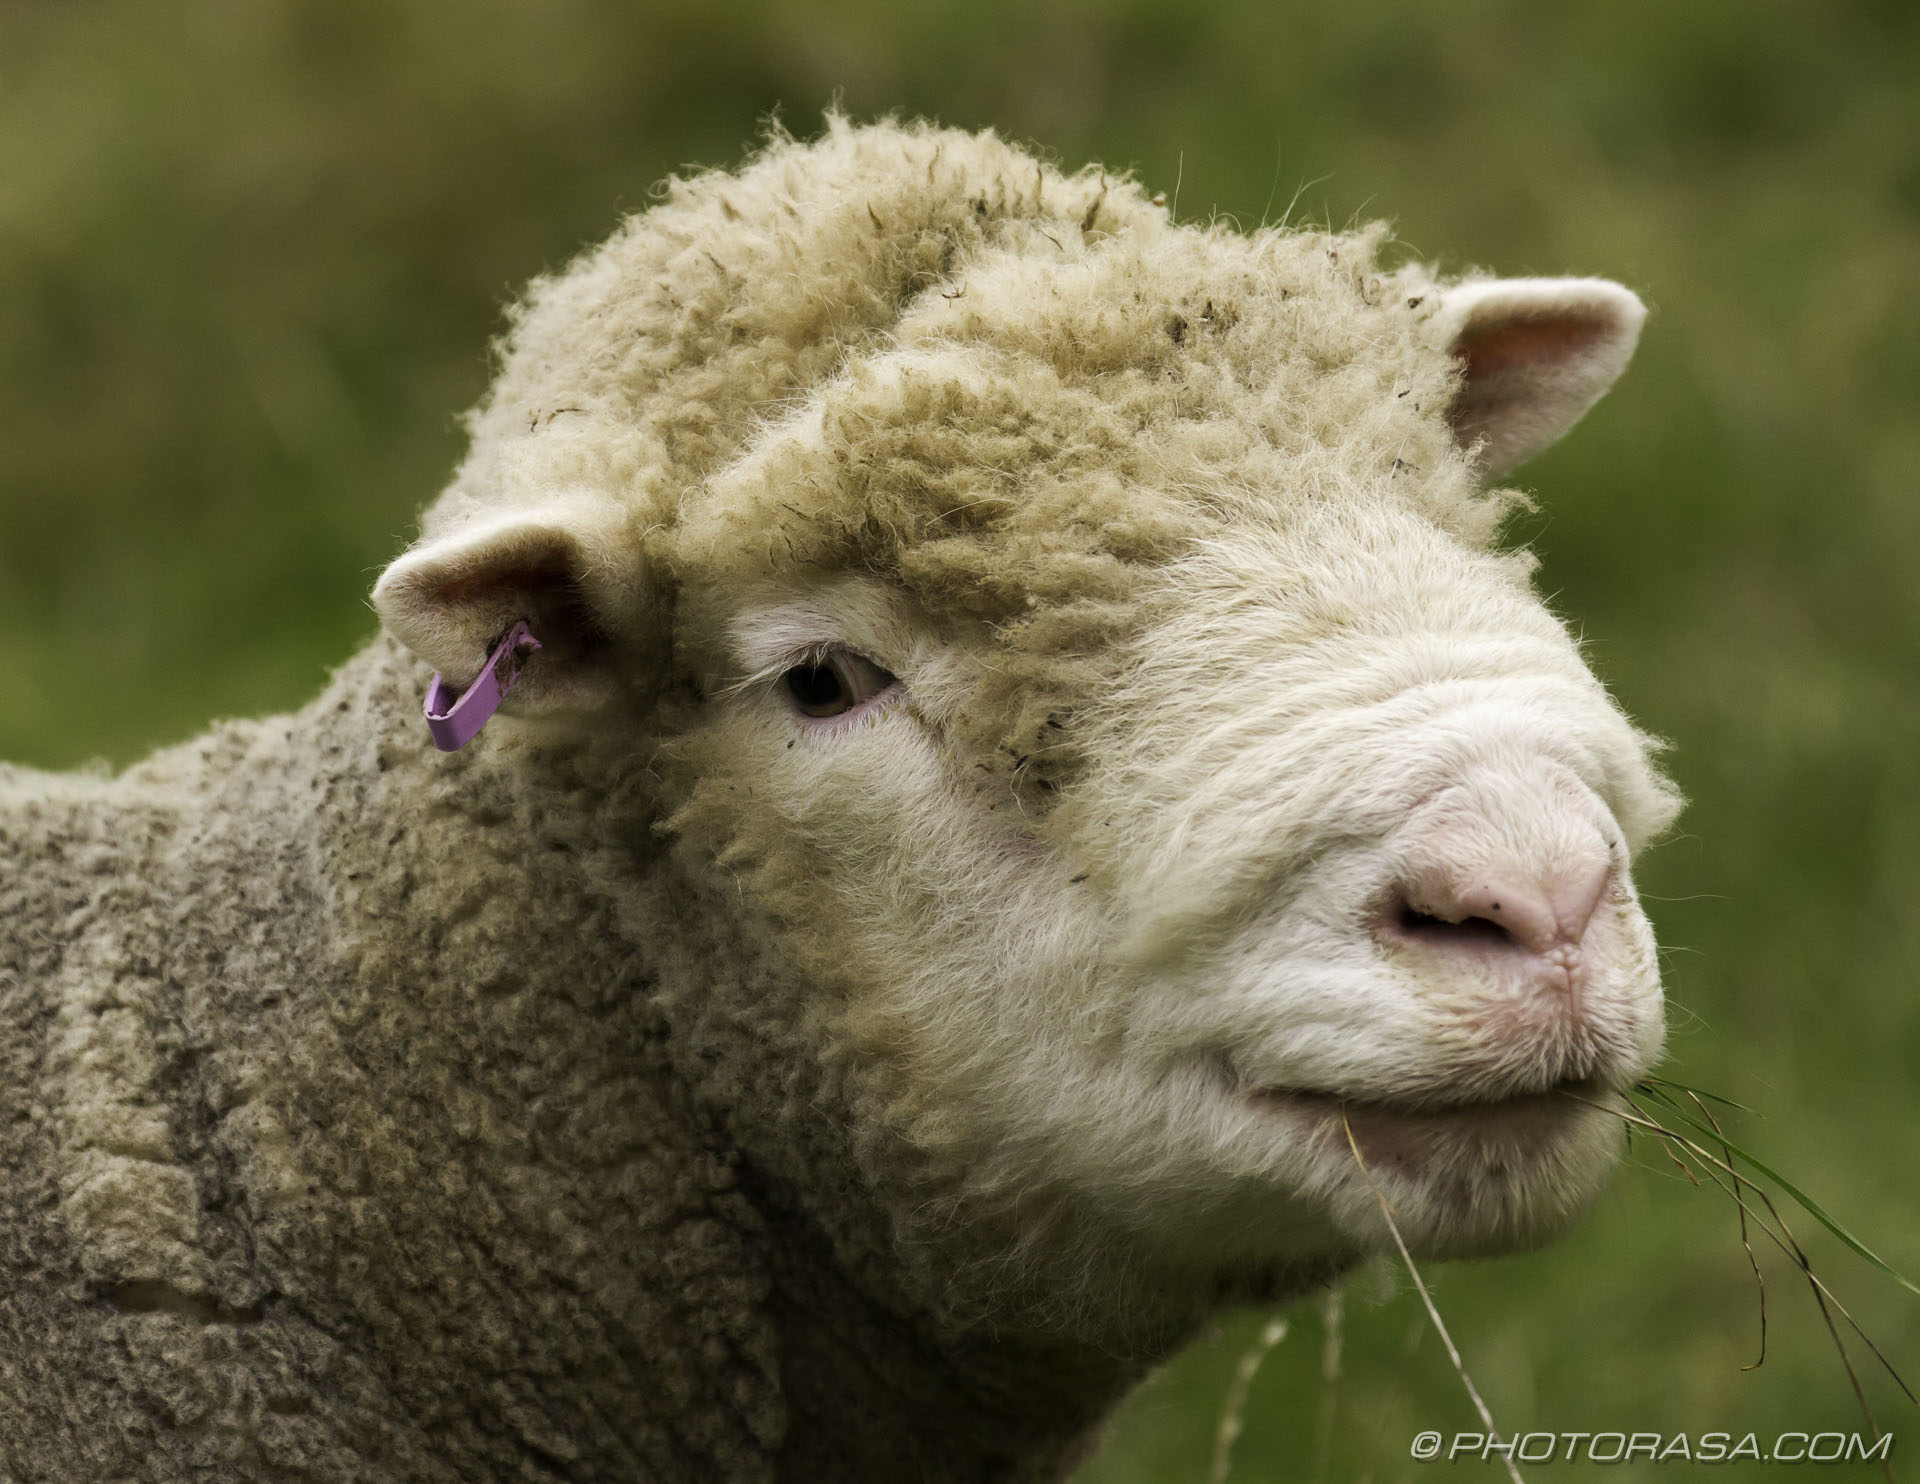 https://photorasa.com/sheep/rambouillet-ewe-head-close-up/